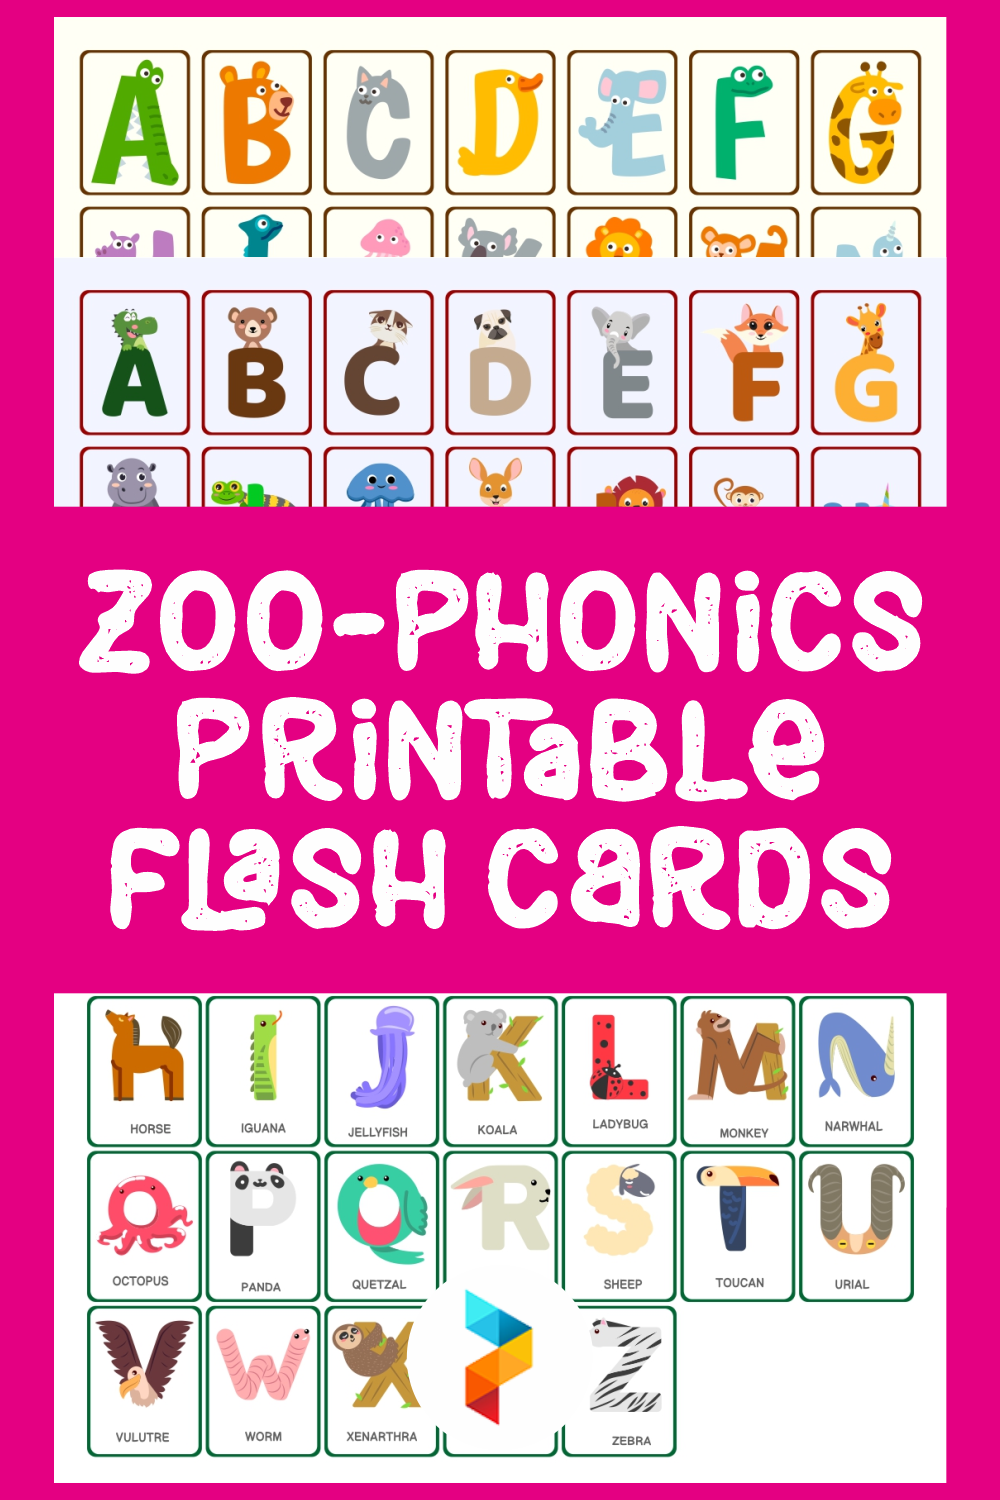 Zoo-phonics Printable Flash Cards